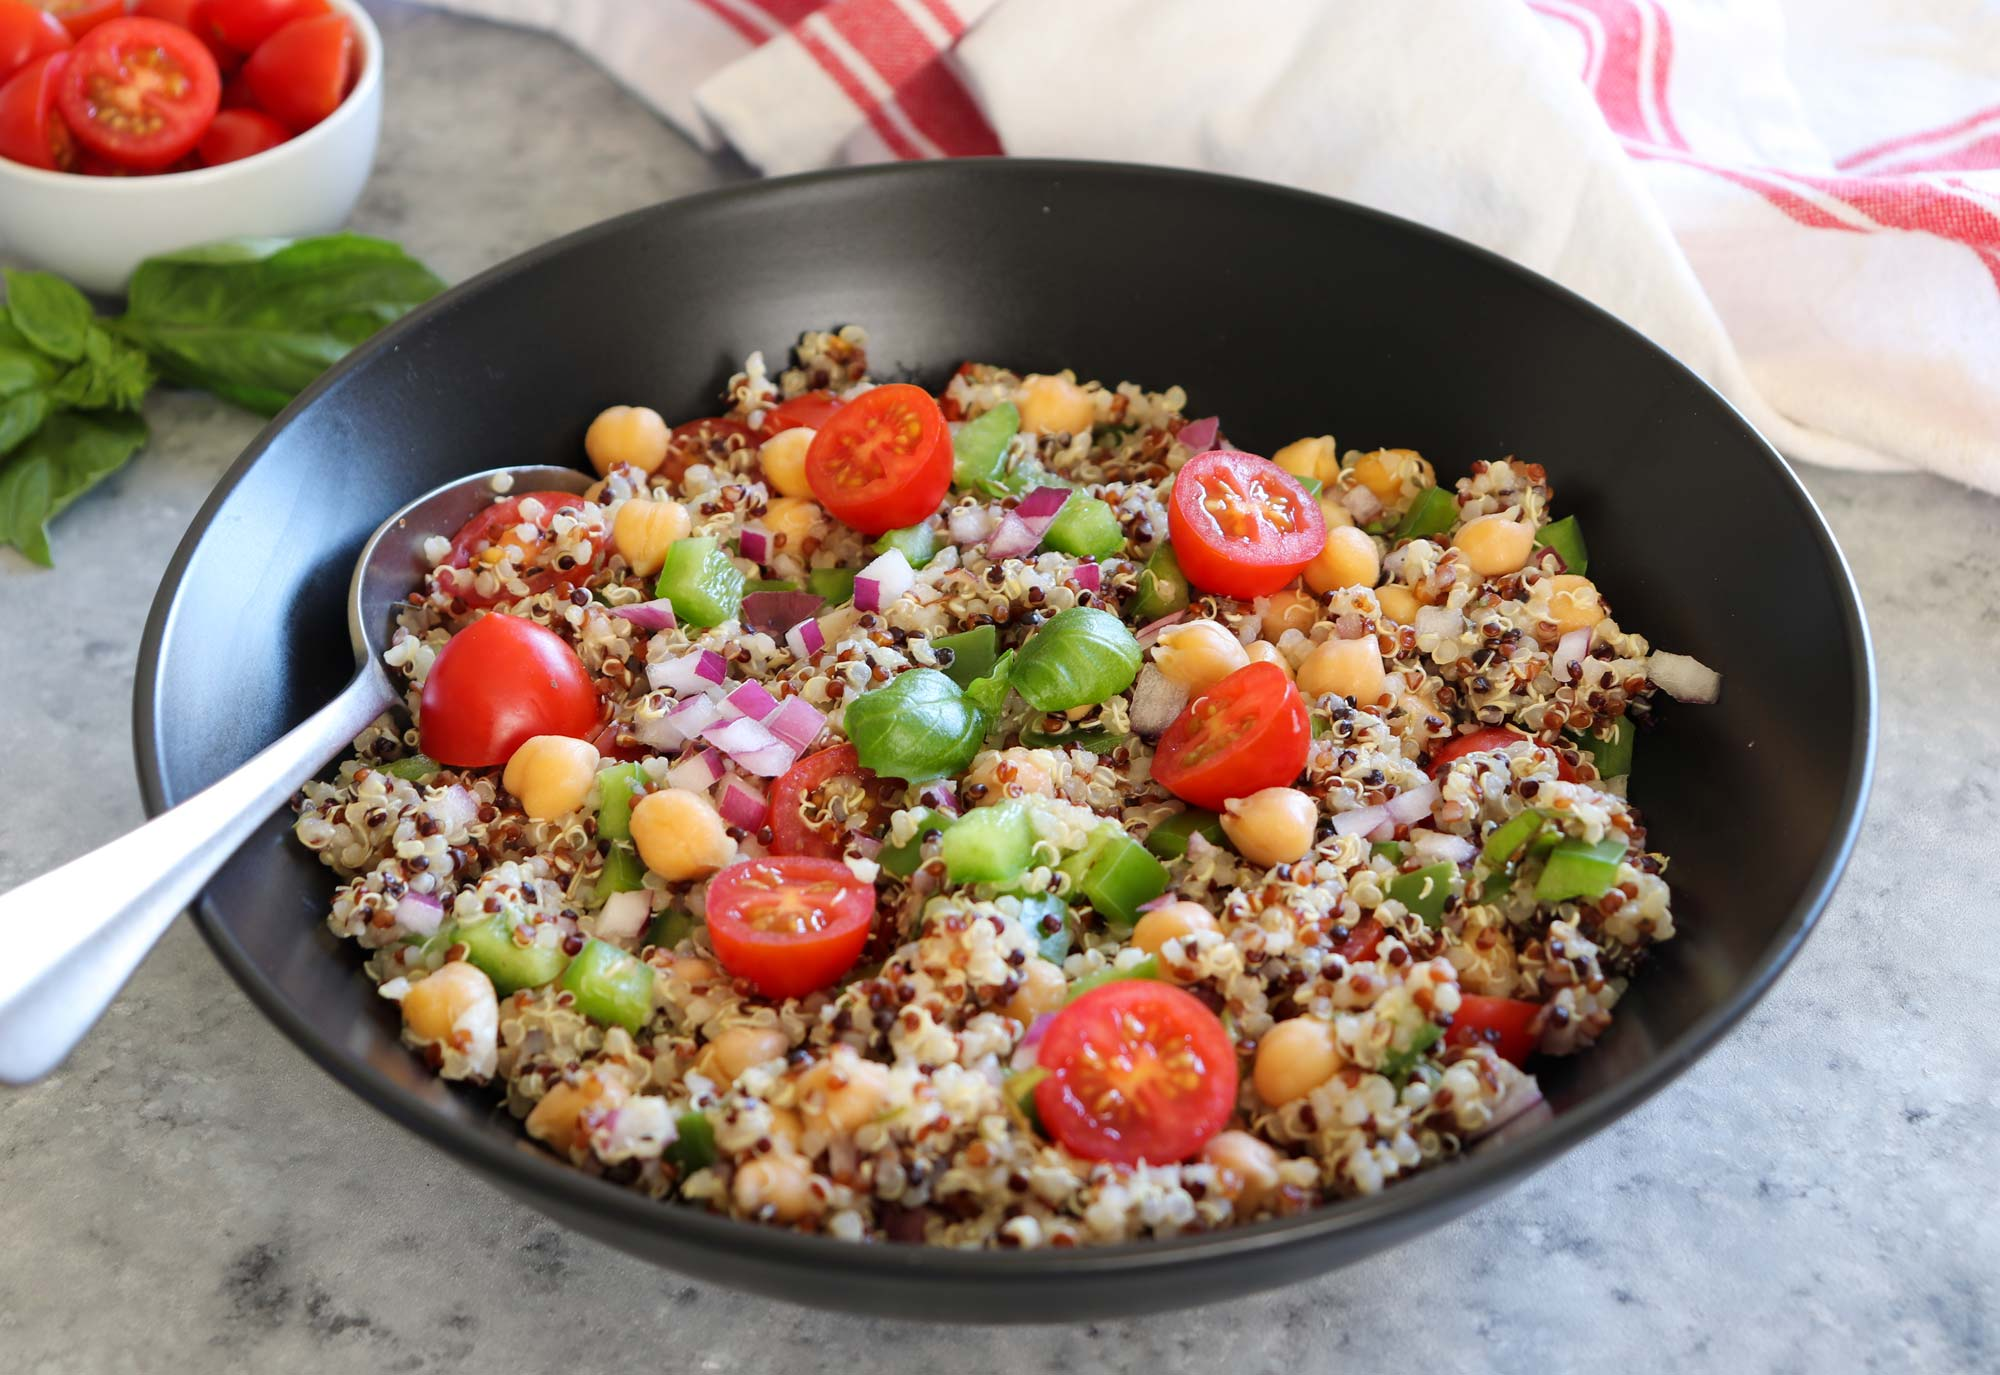 Plant-based dinner recipes: Italian quinoa salad